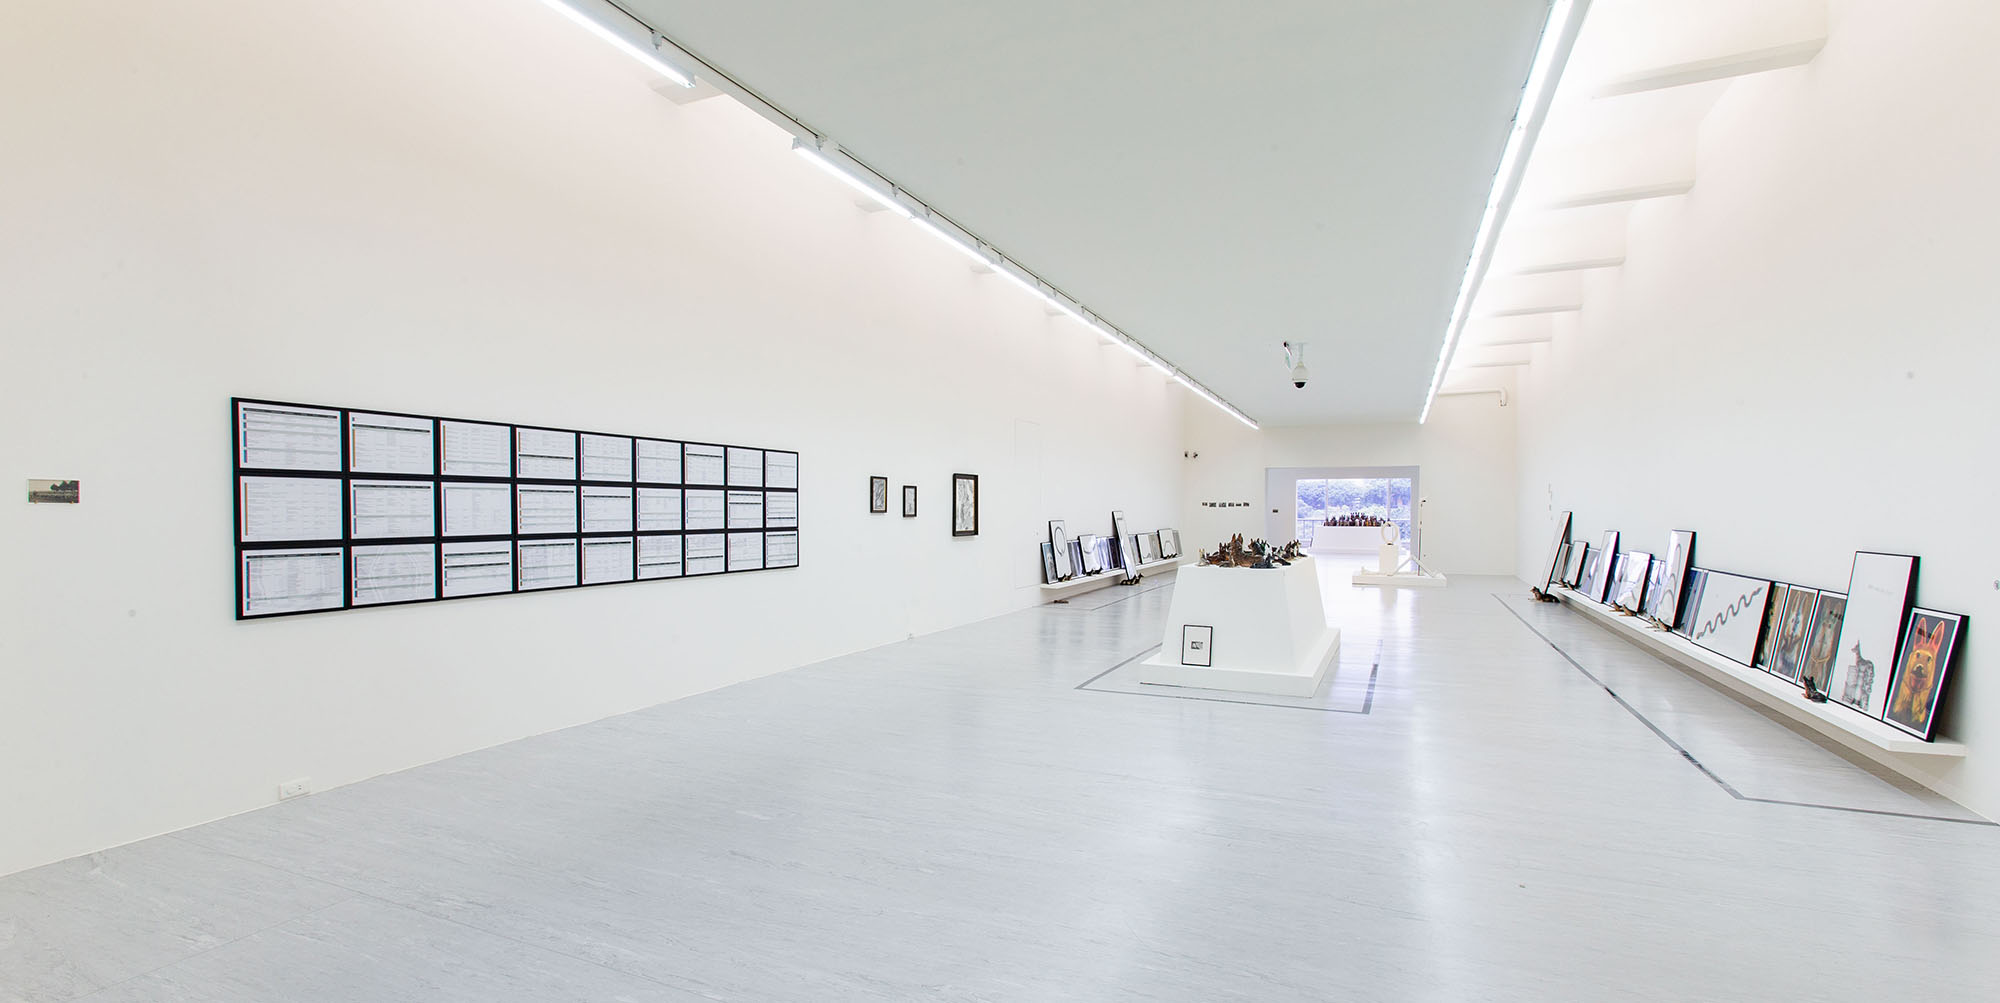 Installation view at Taipei Fine Arts Museum